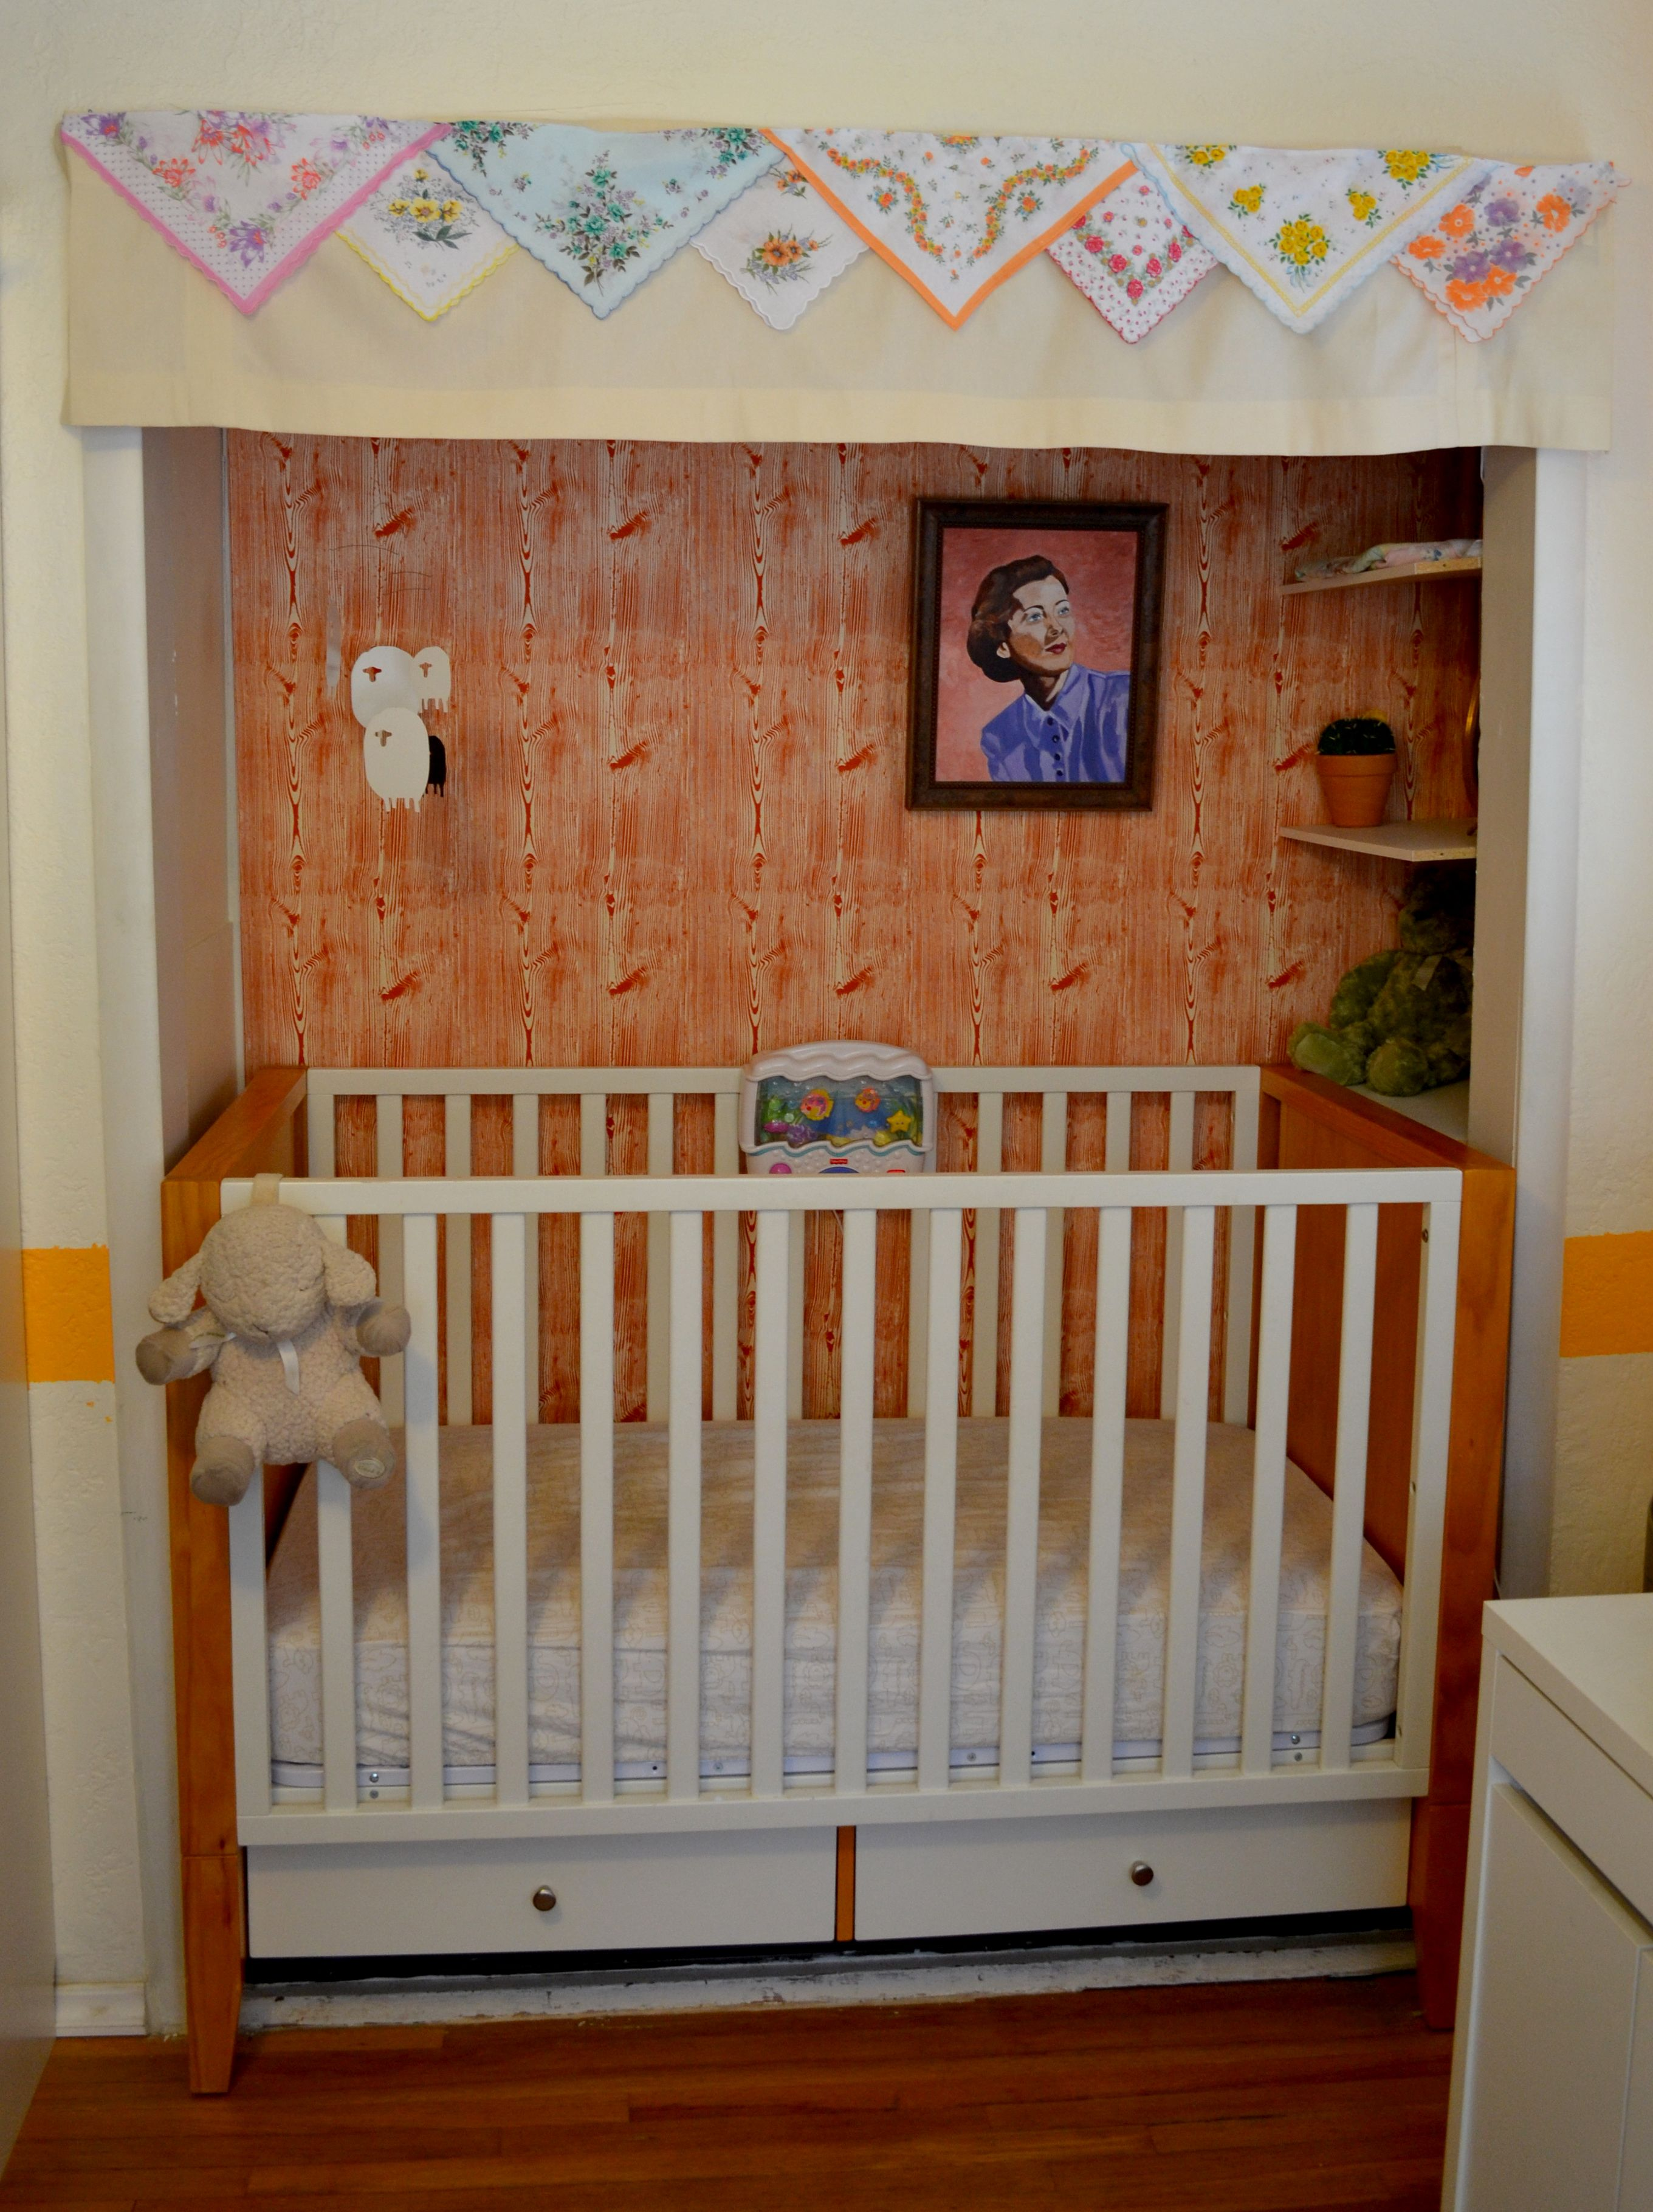 Baby Boy Closet: Crib In The Closet! Great For Saving Space And It's So